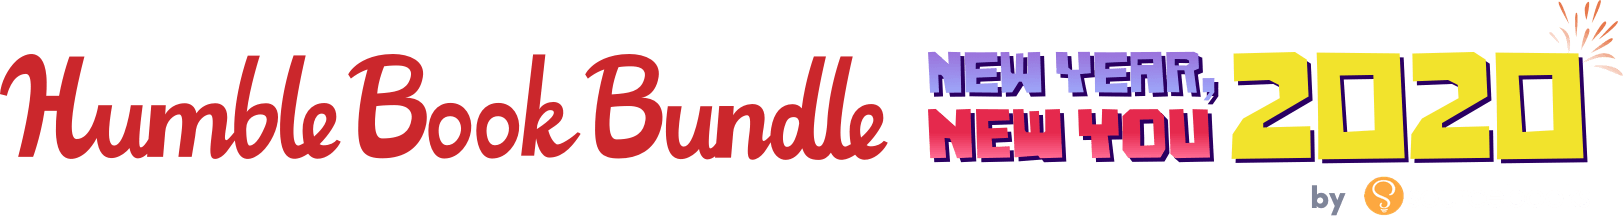 Humble Book Bundle: New Year, New You 2020 by Sourcebooks